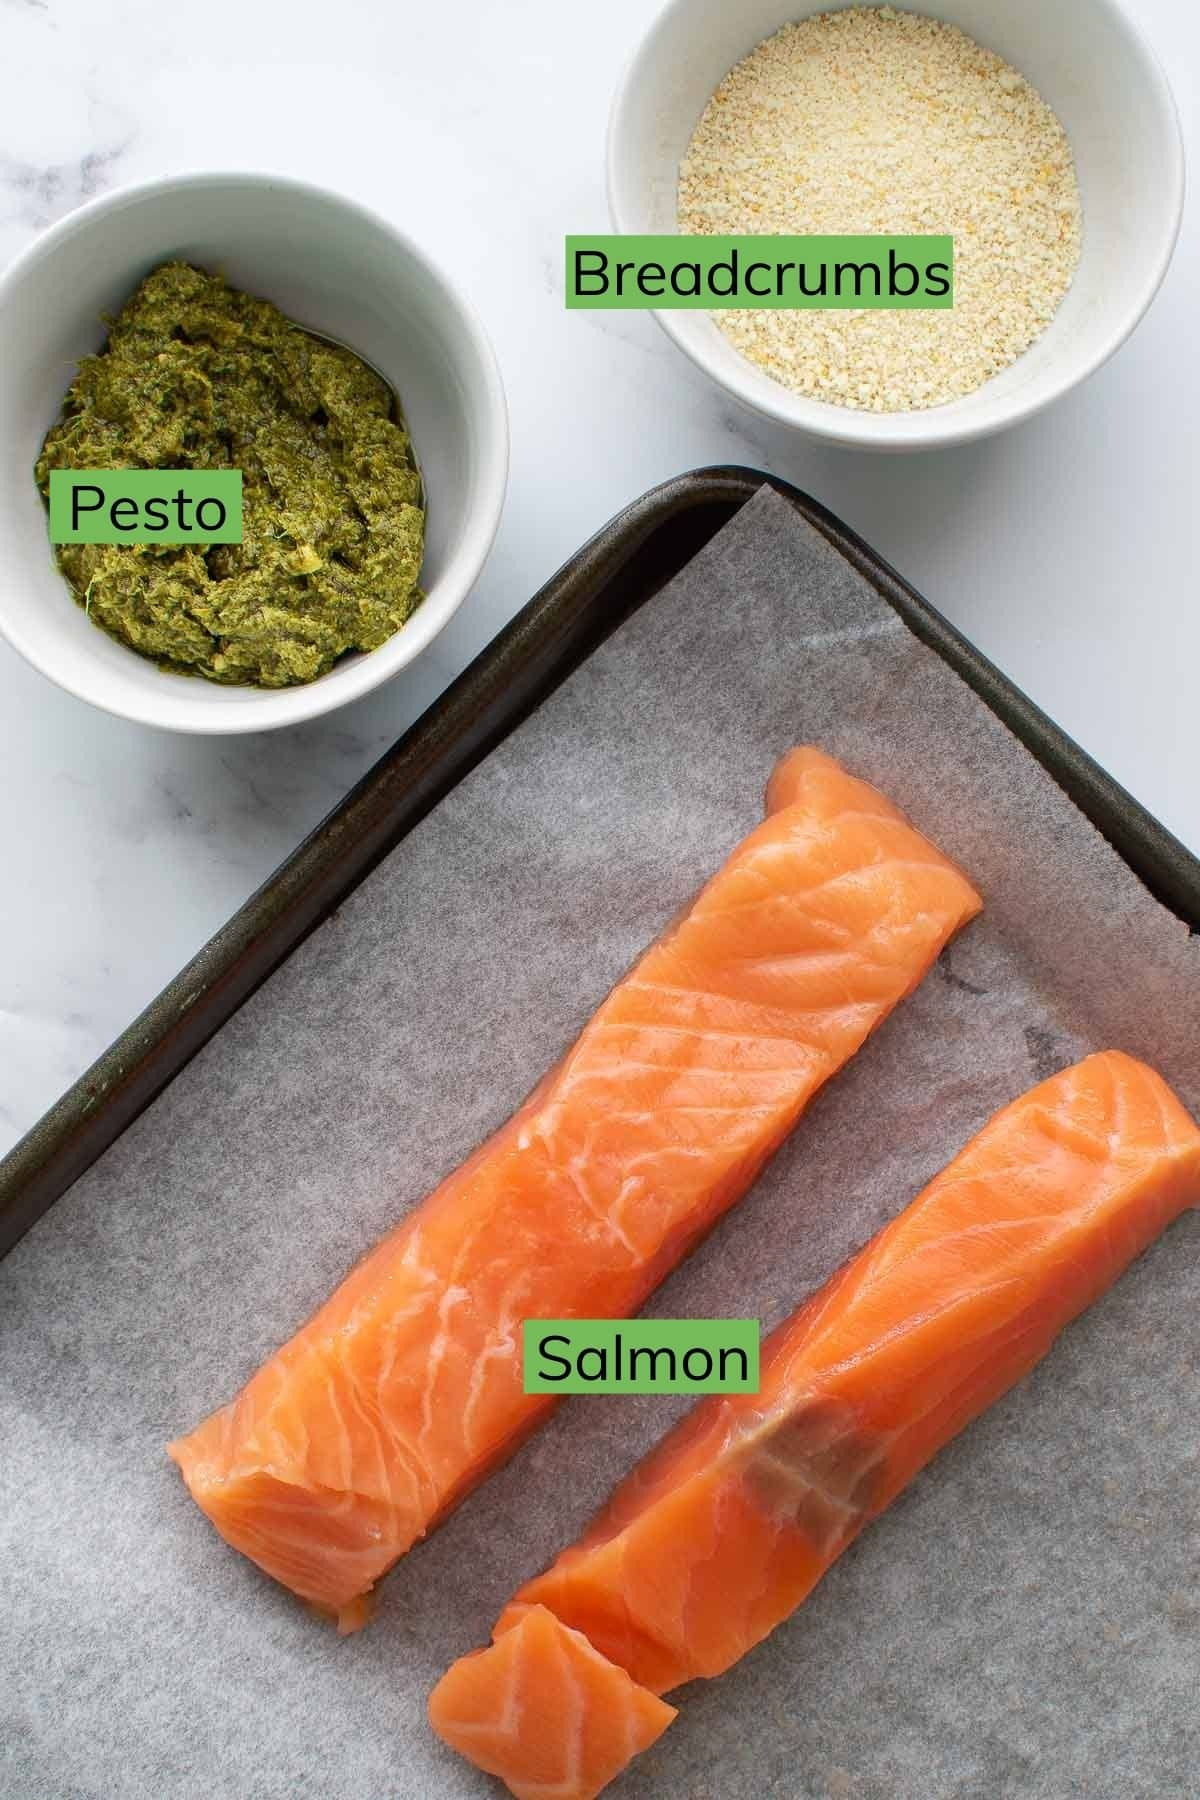 Salmon, pesto and breadcrumbs laid out on a table.